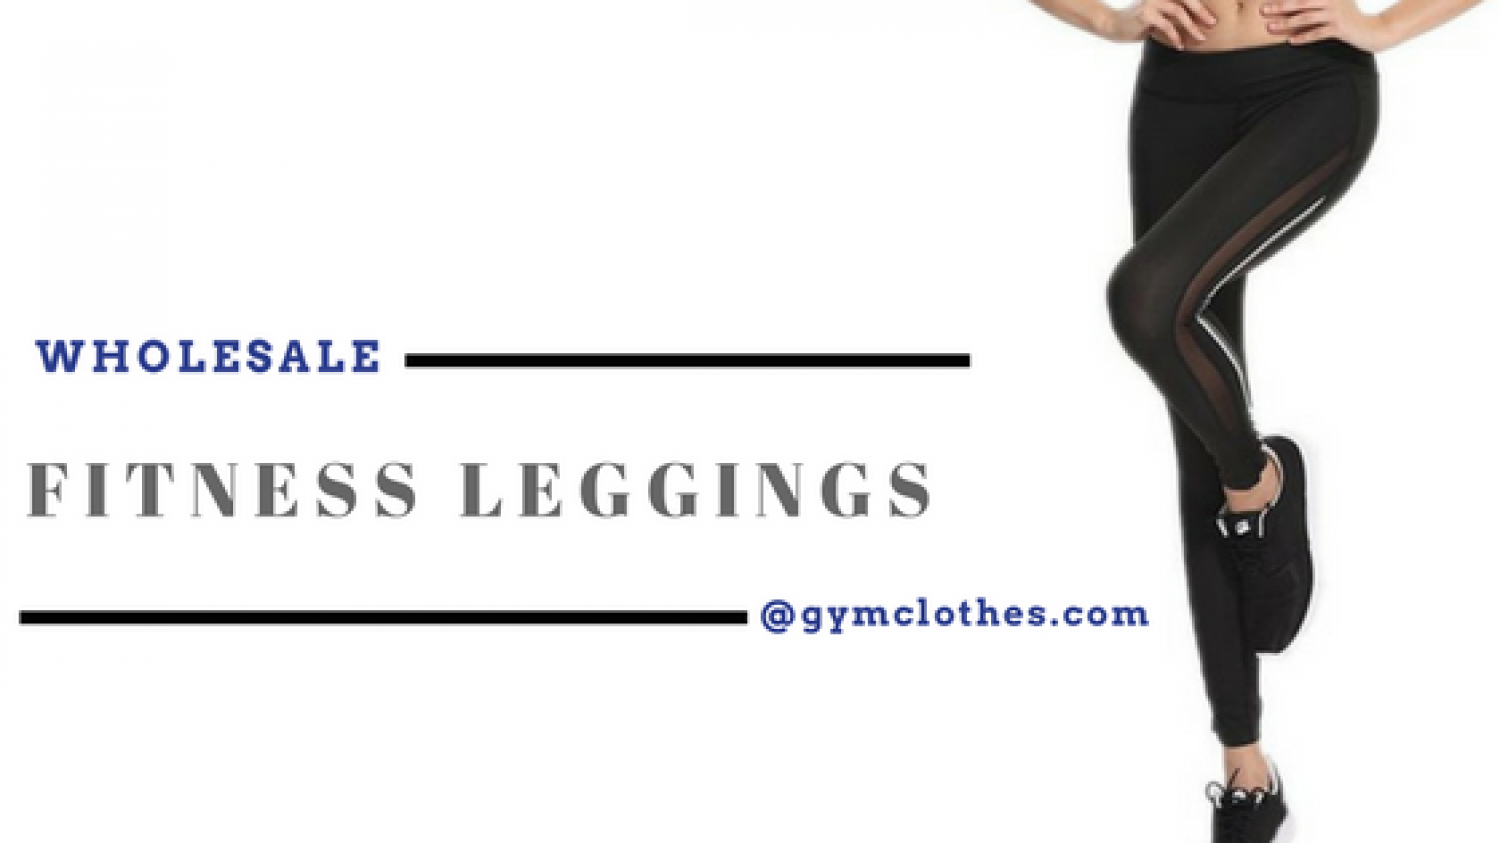 Buy The Best Fitness Leggings In Pop Colors And Trendy Patterns From Gym Clothes Infographic